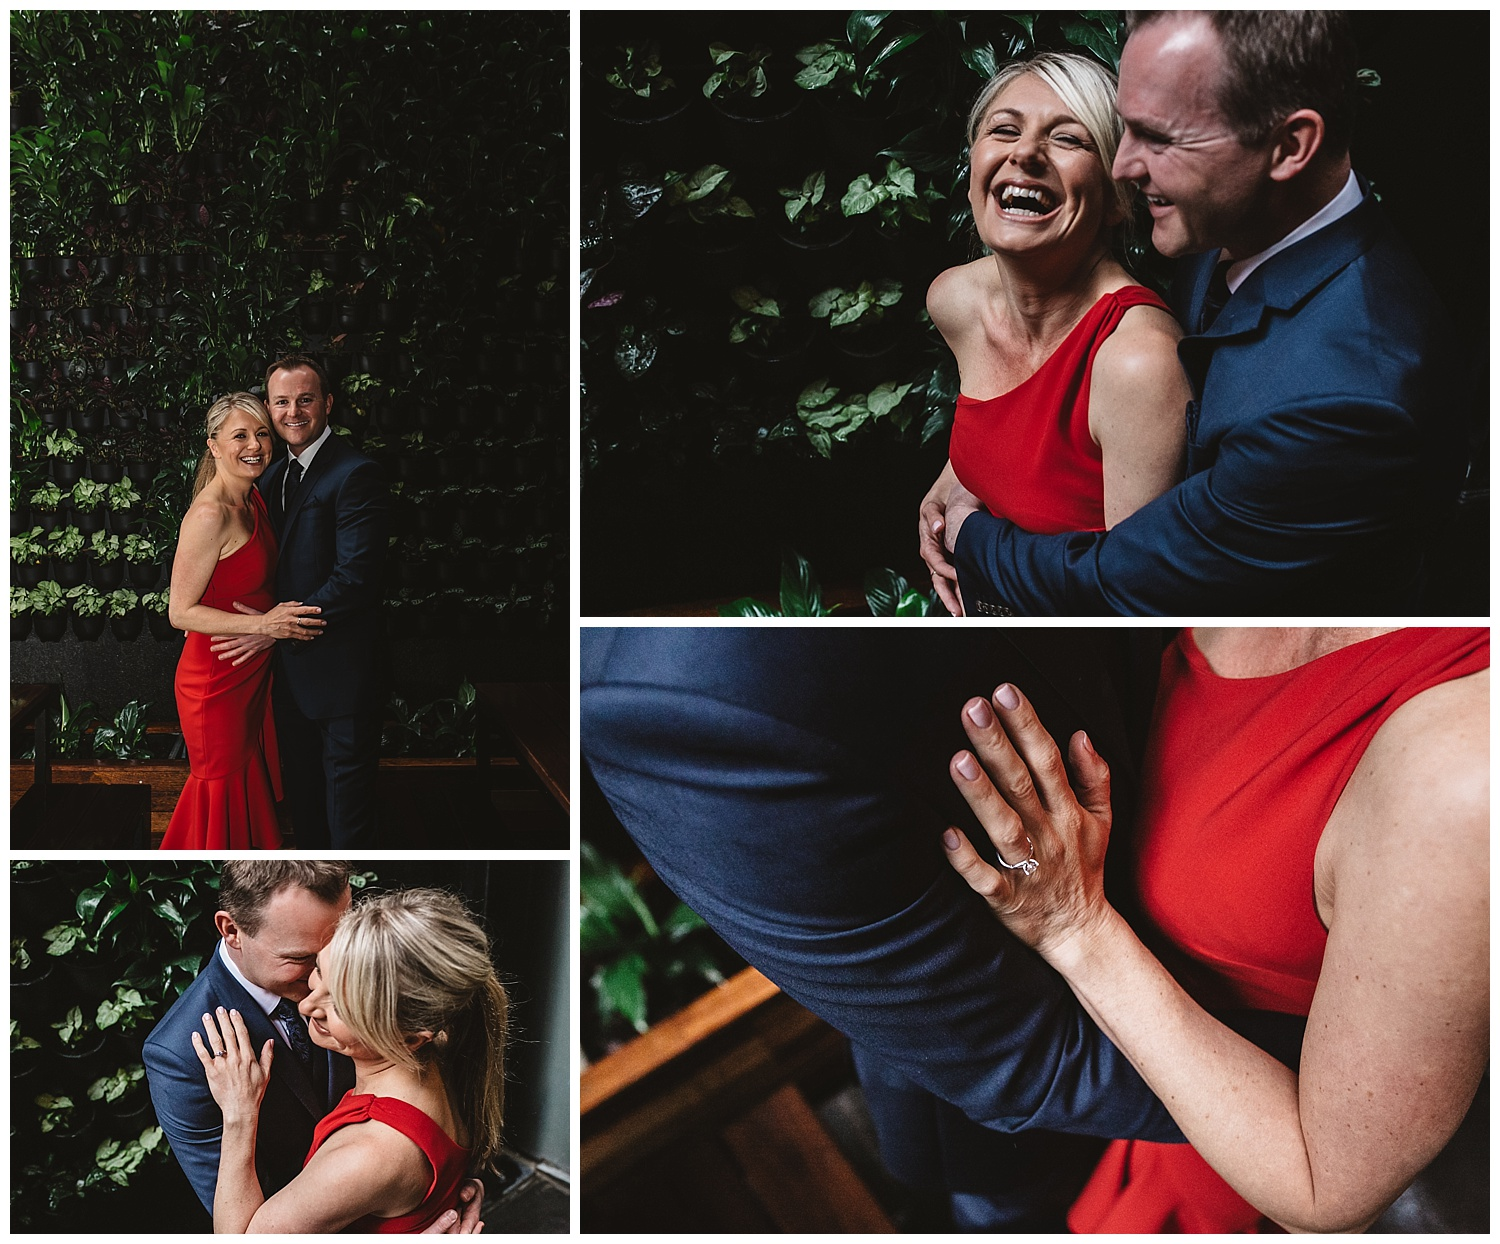 relaxed and fun weddings in melbourne and mornignton peninsula - couples in love and having fun lifestyle photography